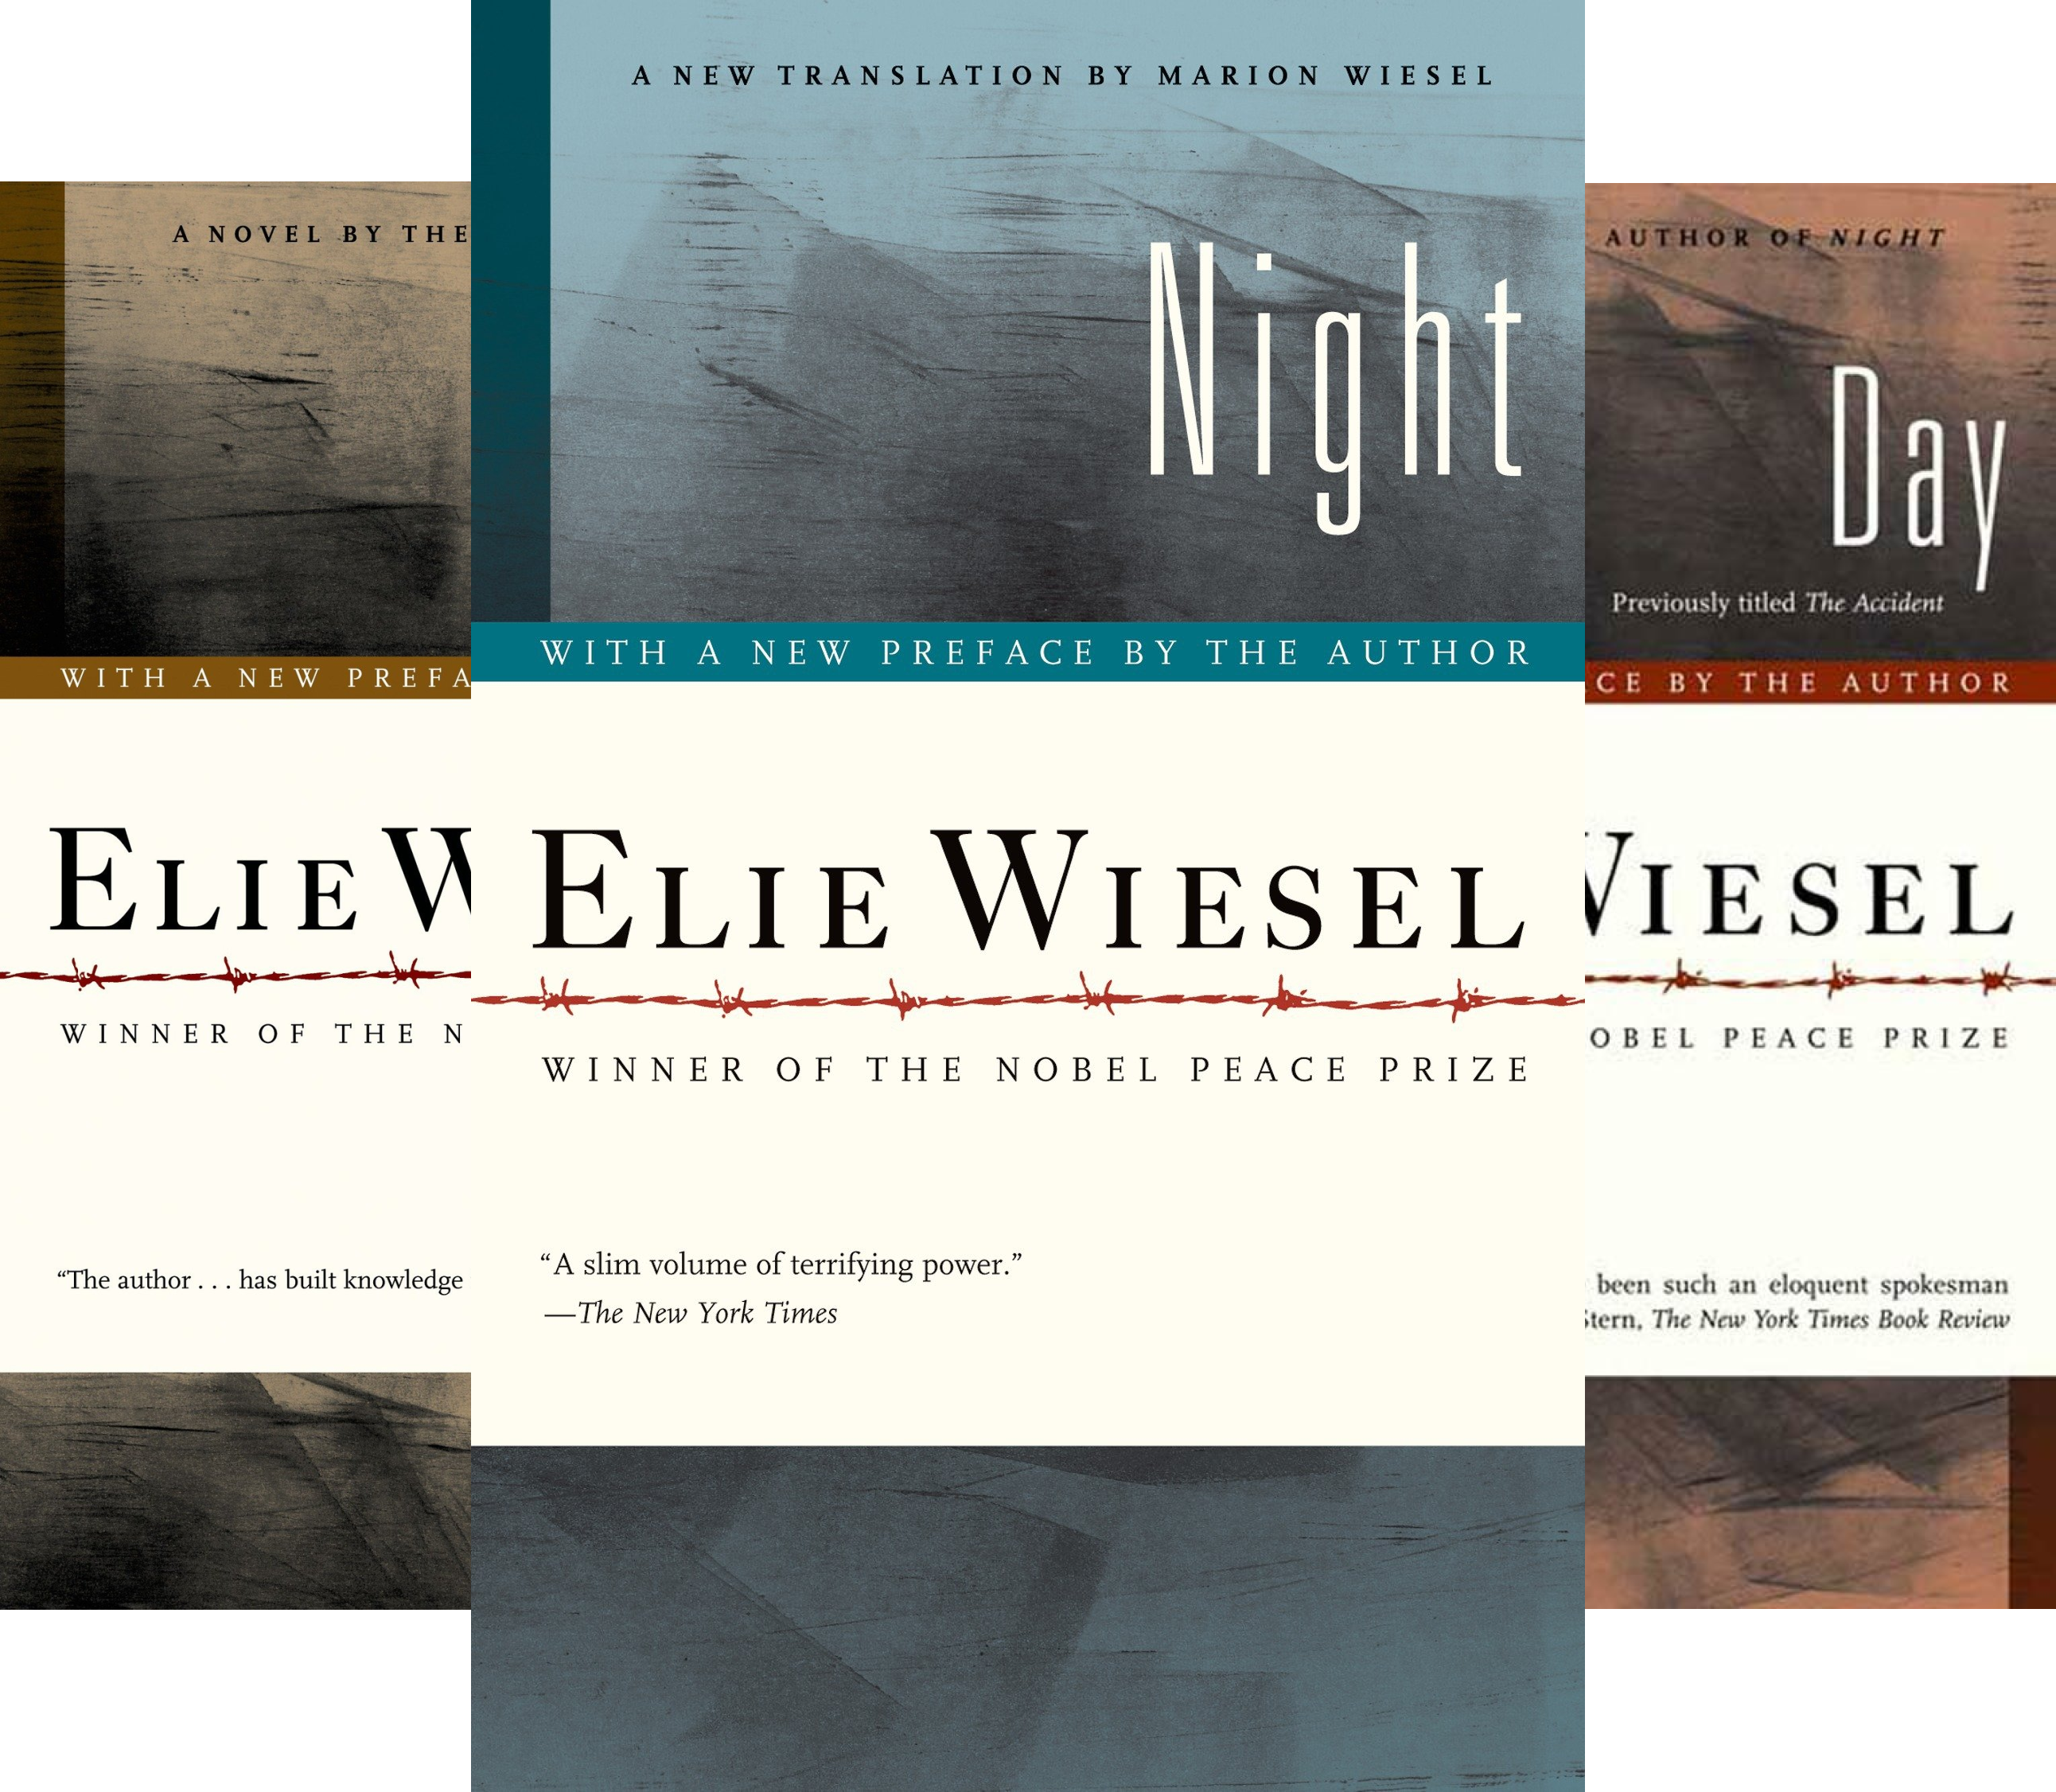 a look at the effects of the holocaust on the faith of the author elie wiesel Night by elie wiesel questions and answers chapter 1 1) question: describe moshe the beadle answer: moshe the beadle is a caretaker of a synagogue in sighet.